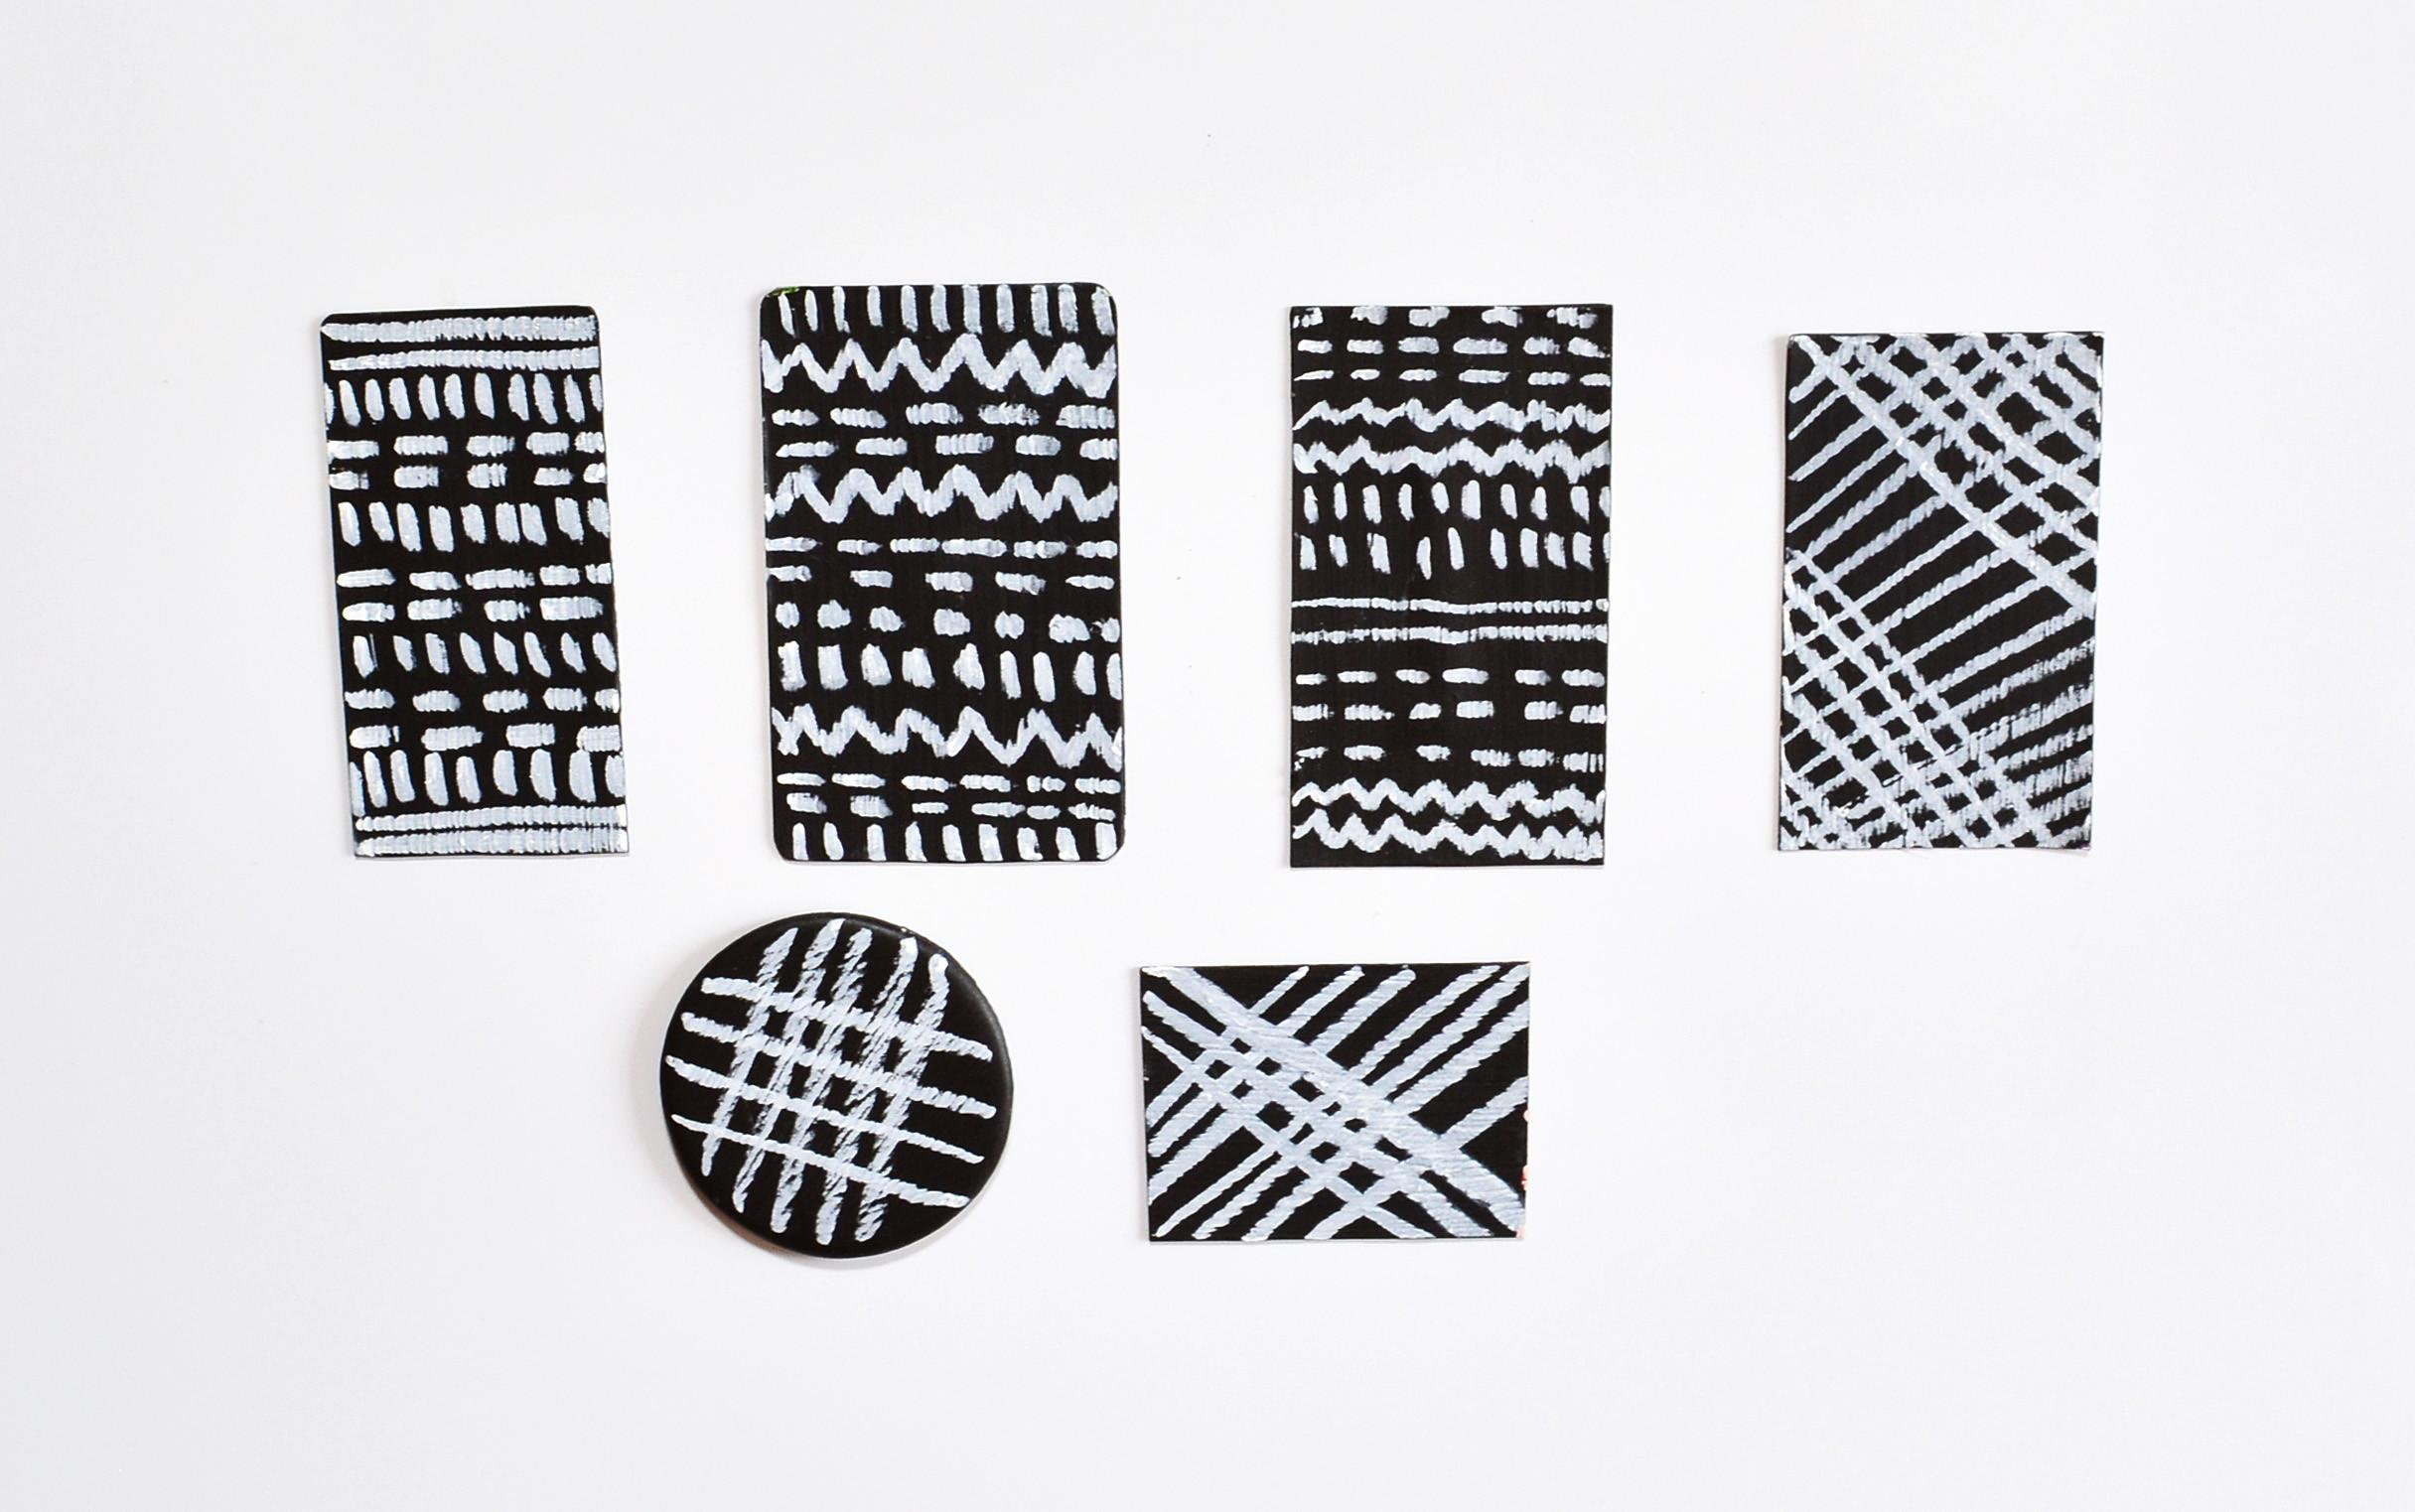 Diy Project Makeover Your Old Fridge Magnets